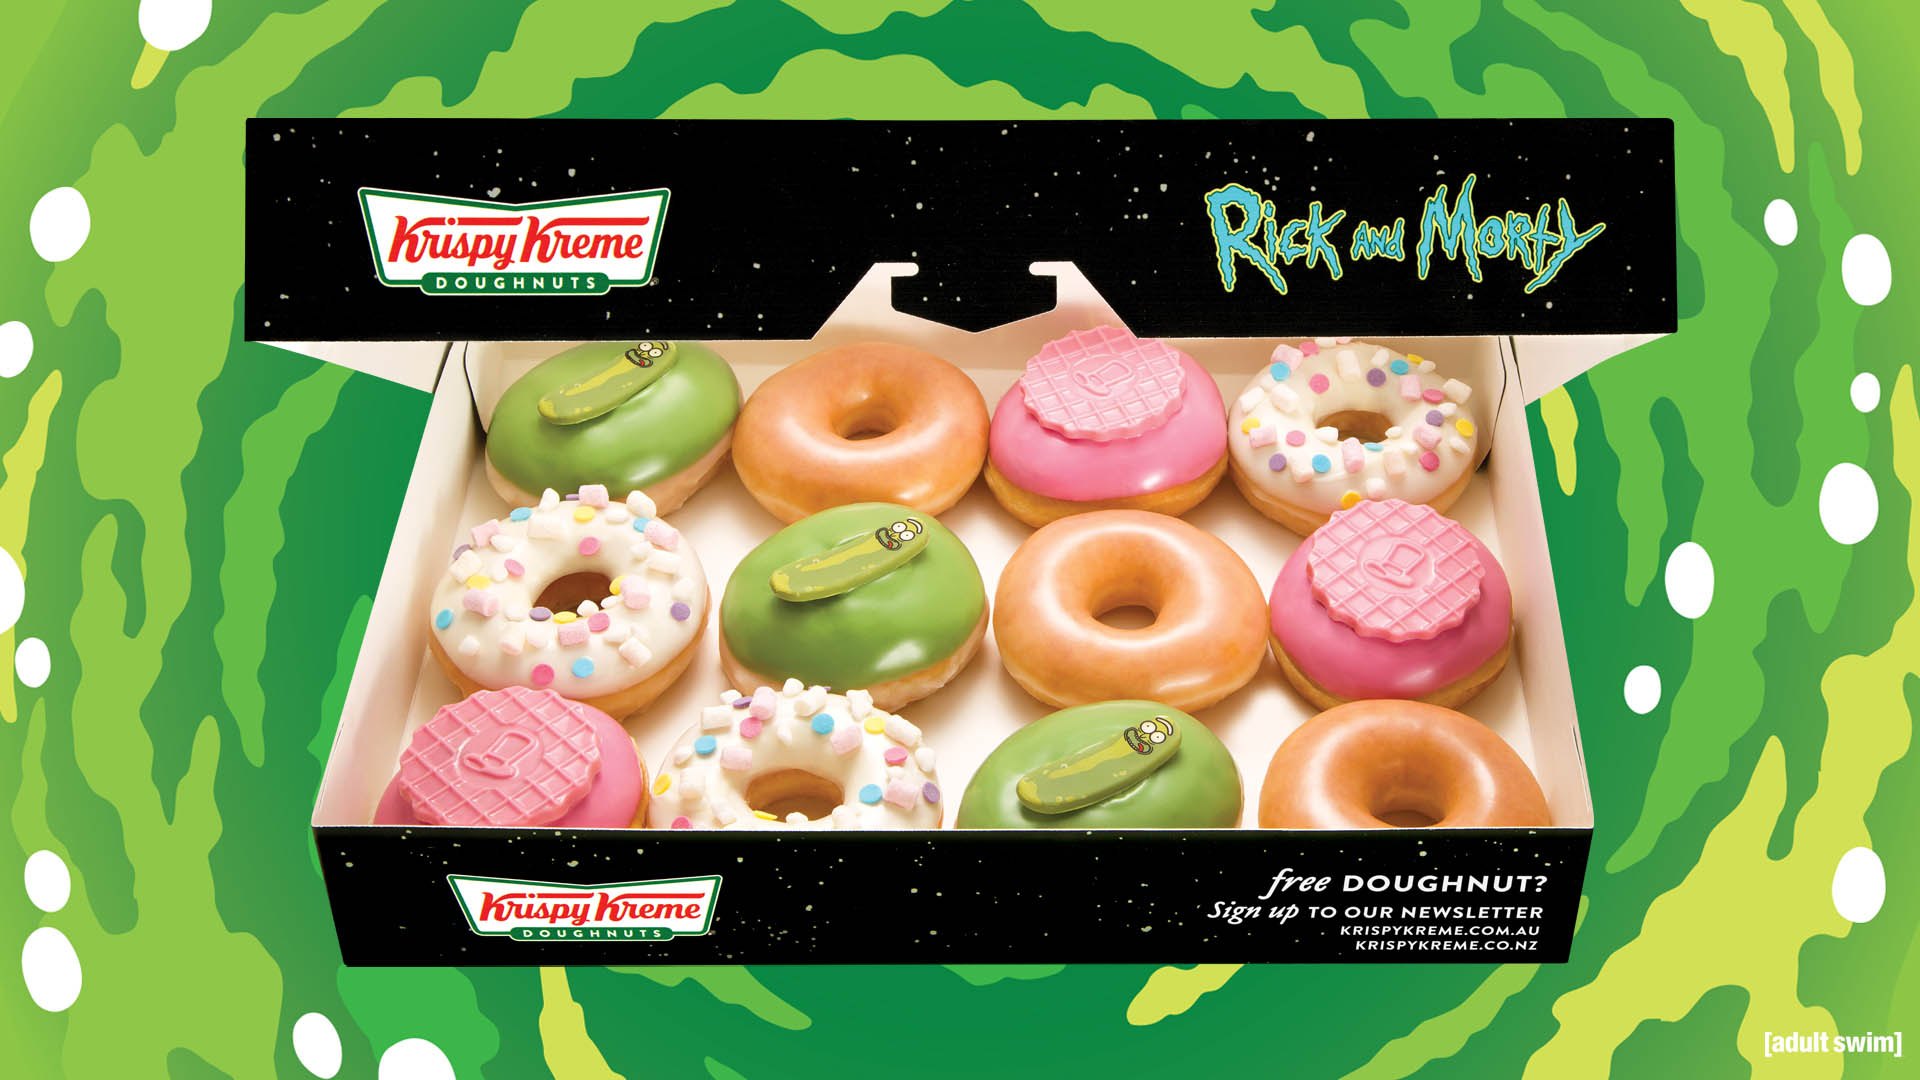 Krispy Kreme - Rick and Morty Limited Edition